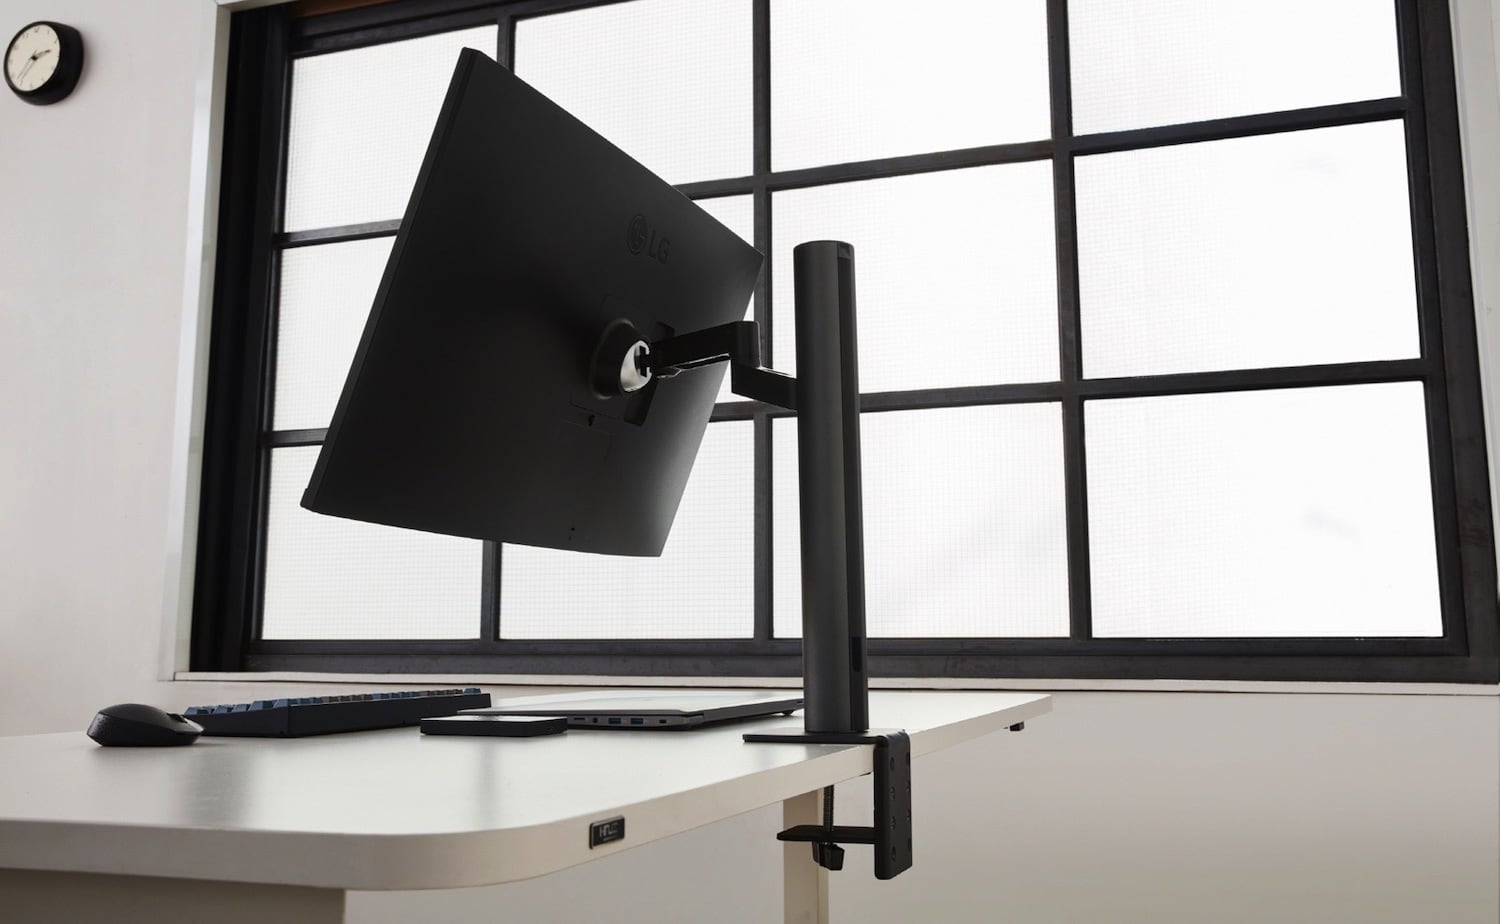 LG UltraFine Ergo Swiveling Display allows you to swivel and tilt the hinge